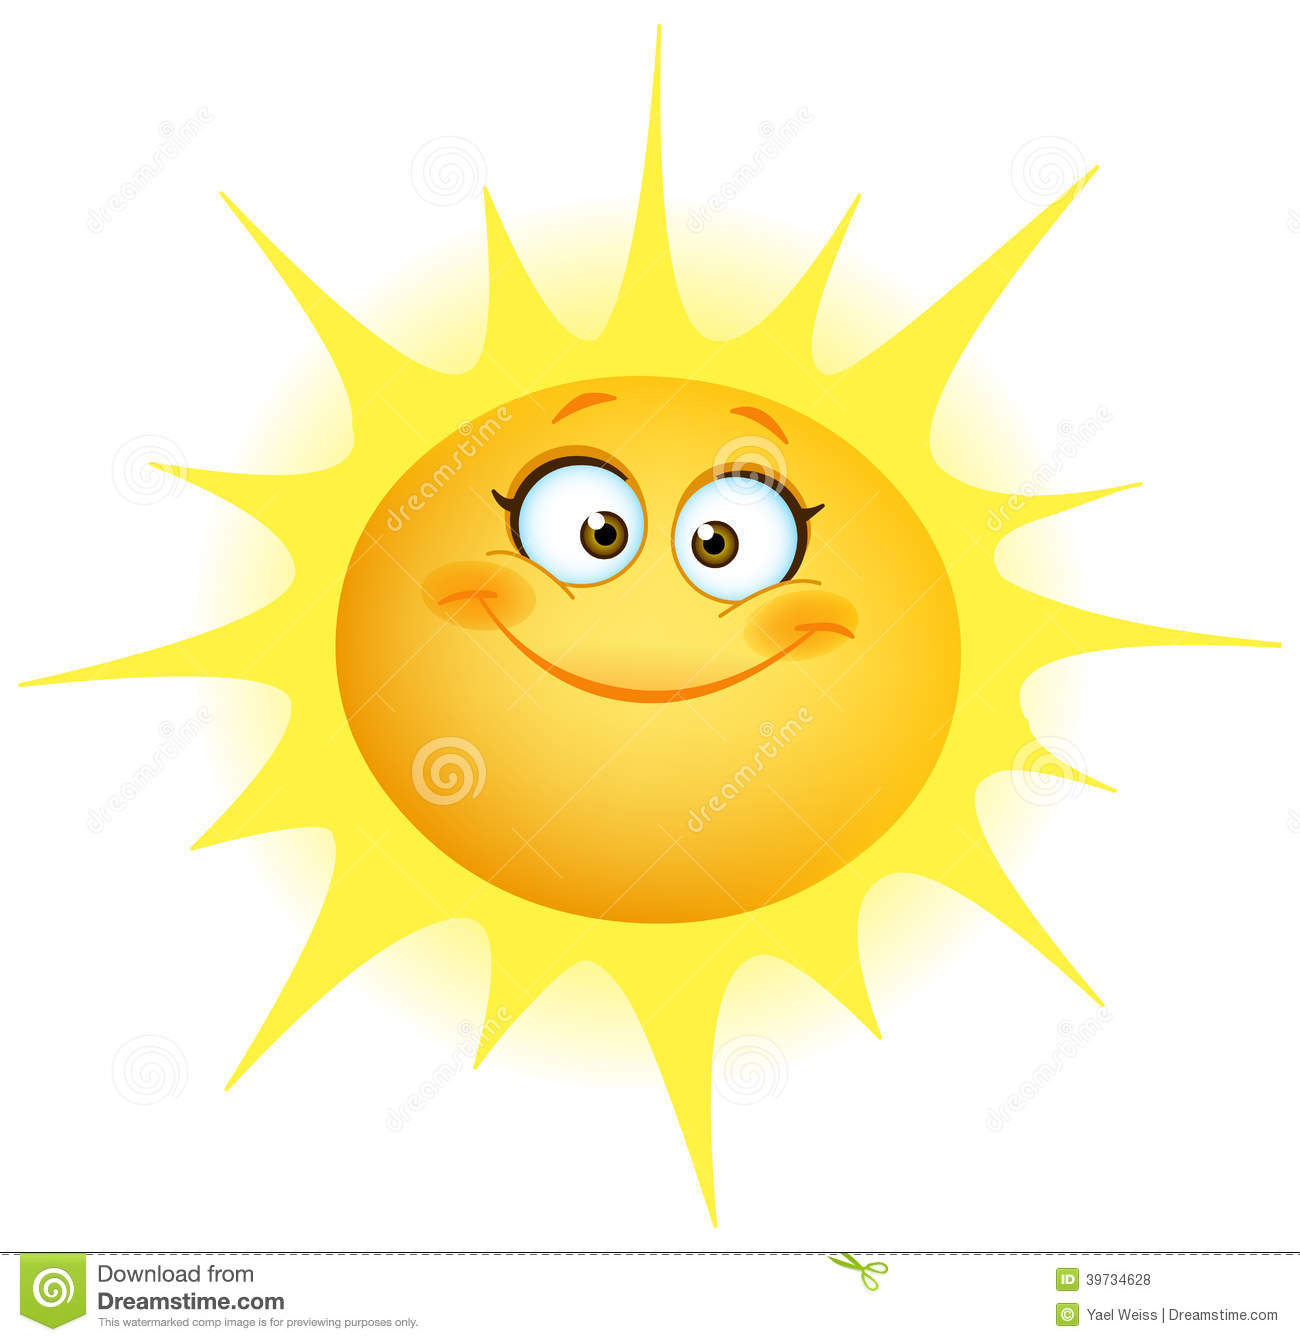 https://thumbs.dreamstime.com/z/cute-sun-illustration-smiling-39734628.jpg